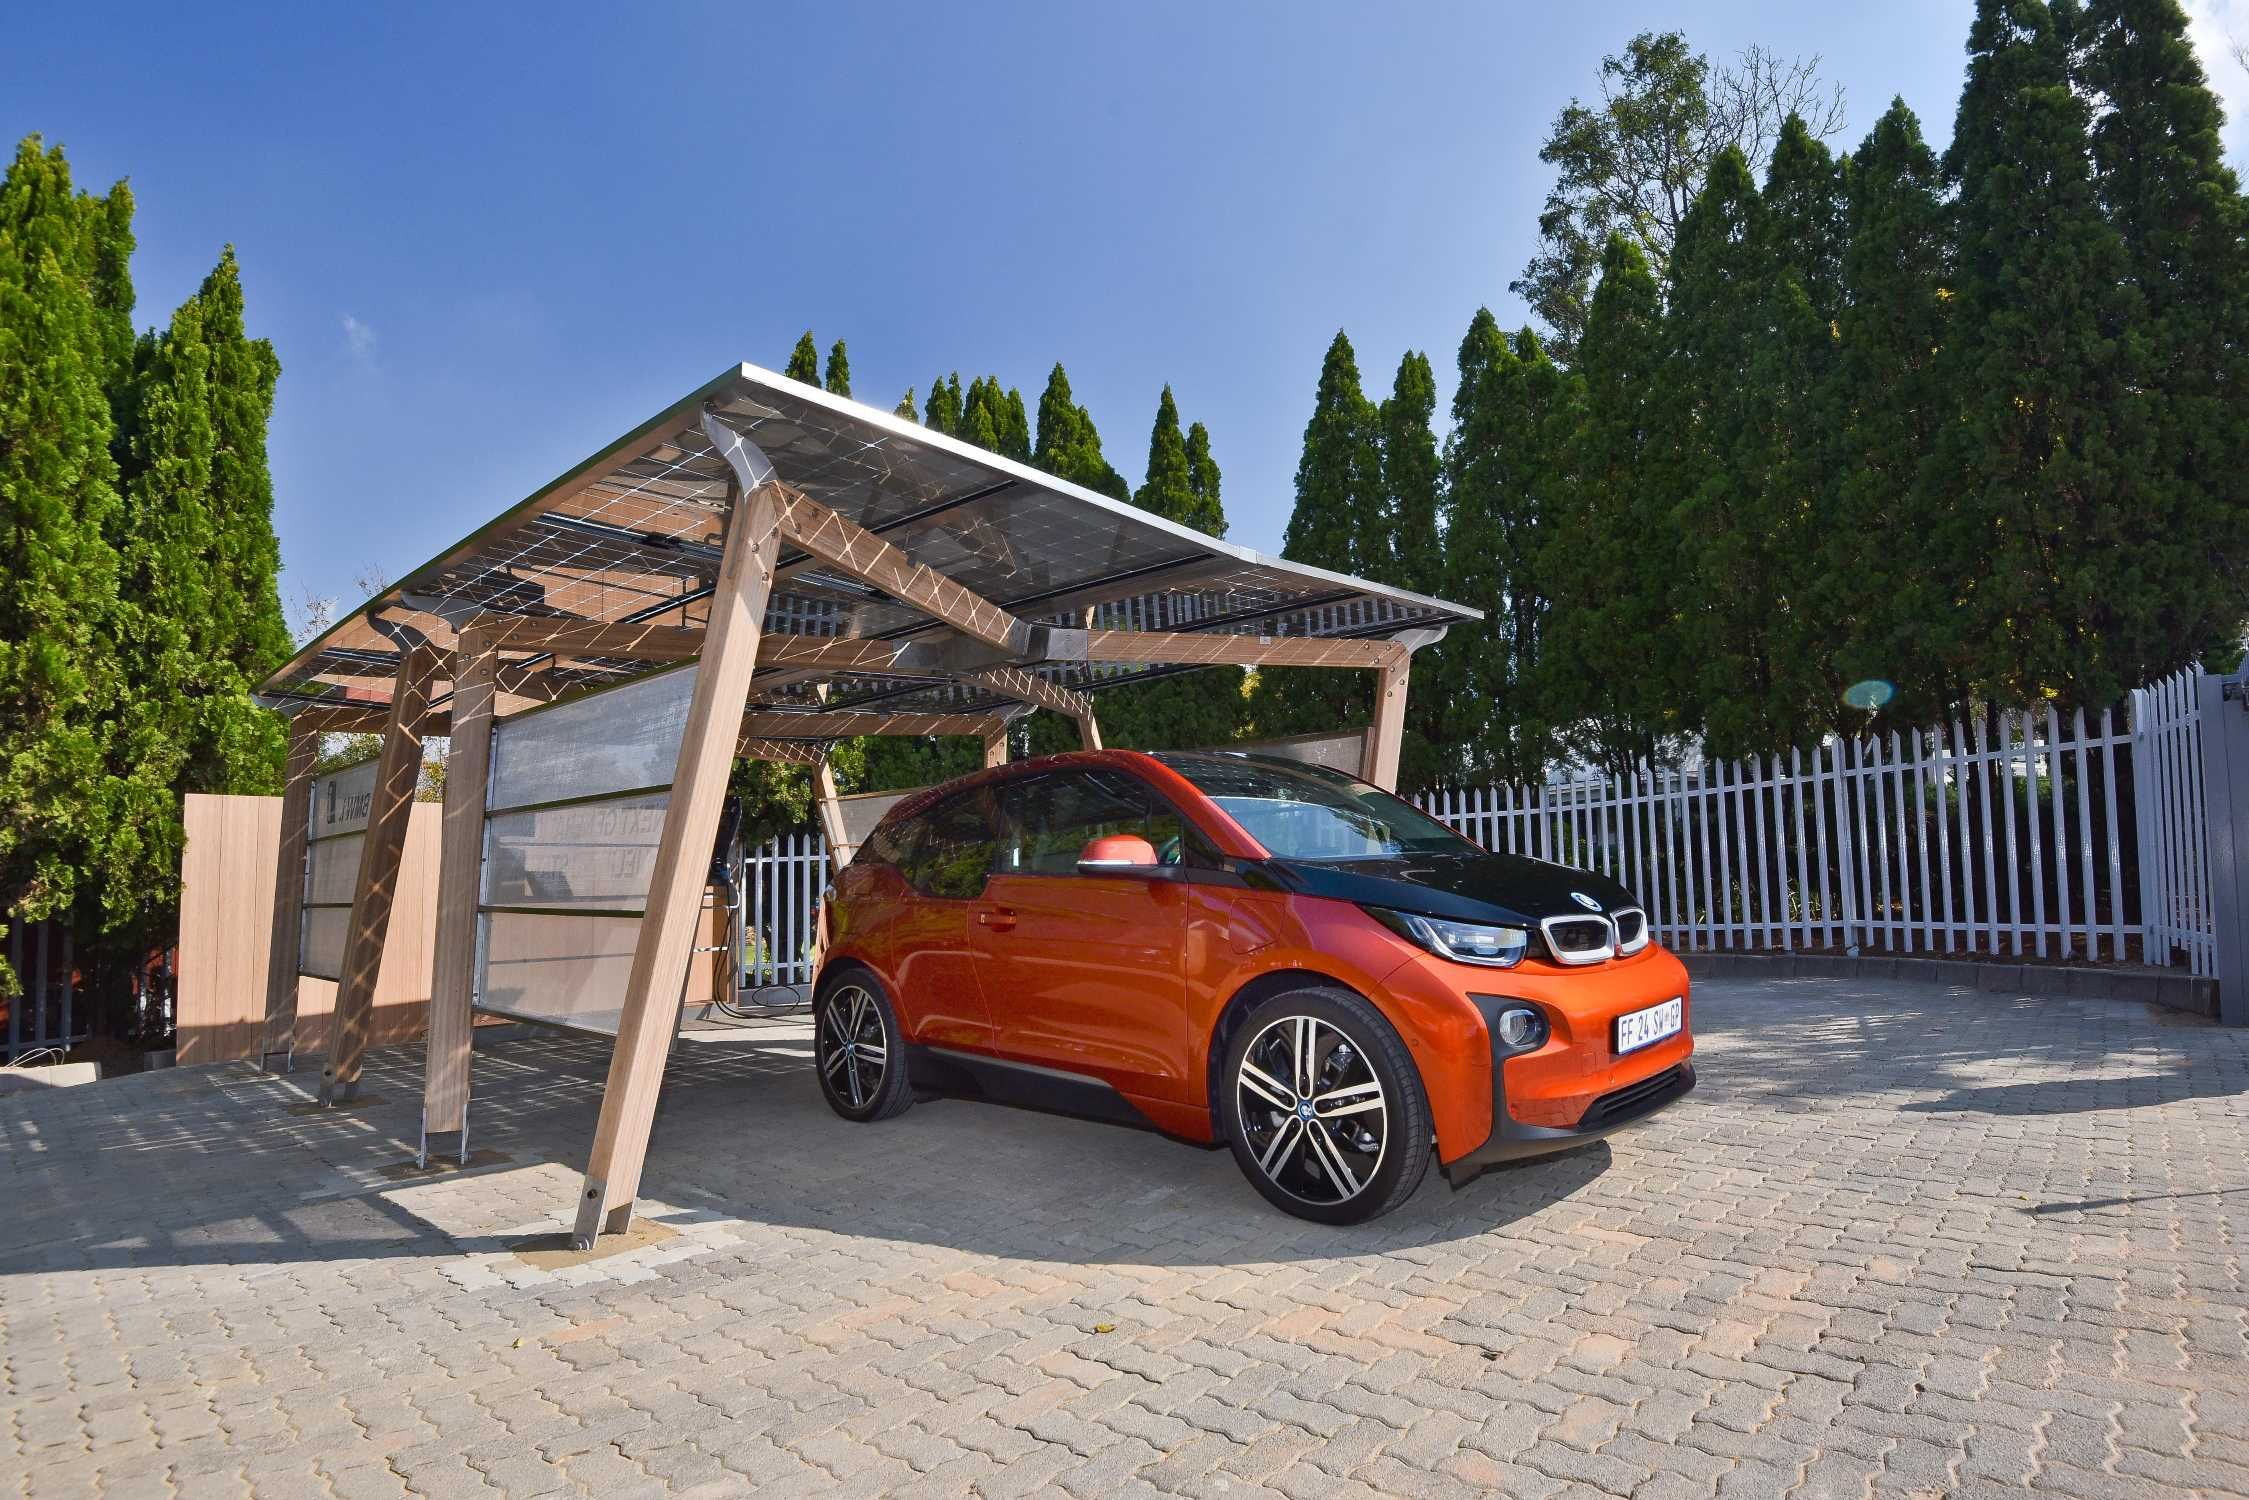 BMW South Africa starts rolling out solar carport charging